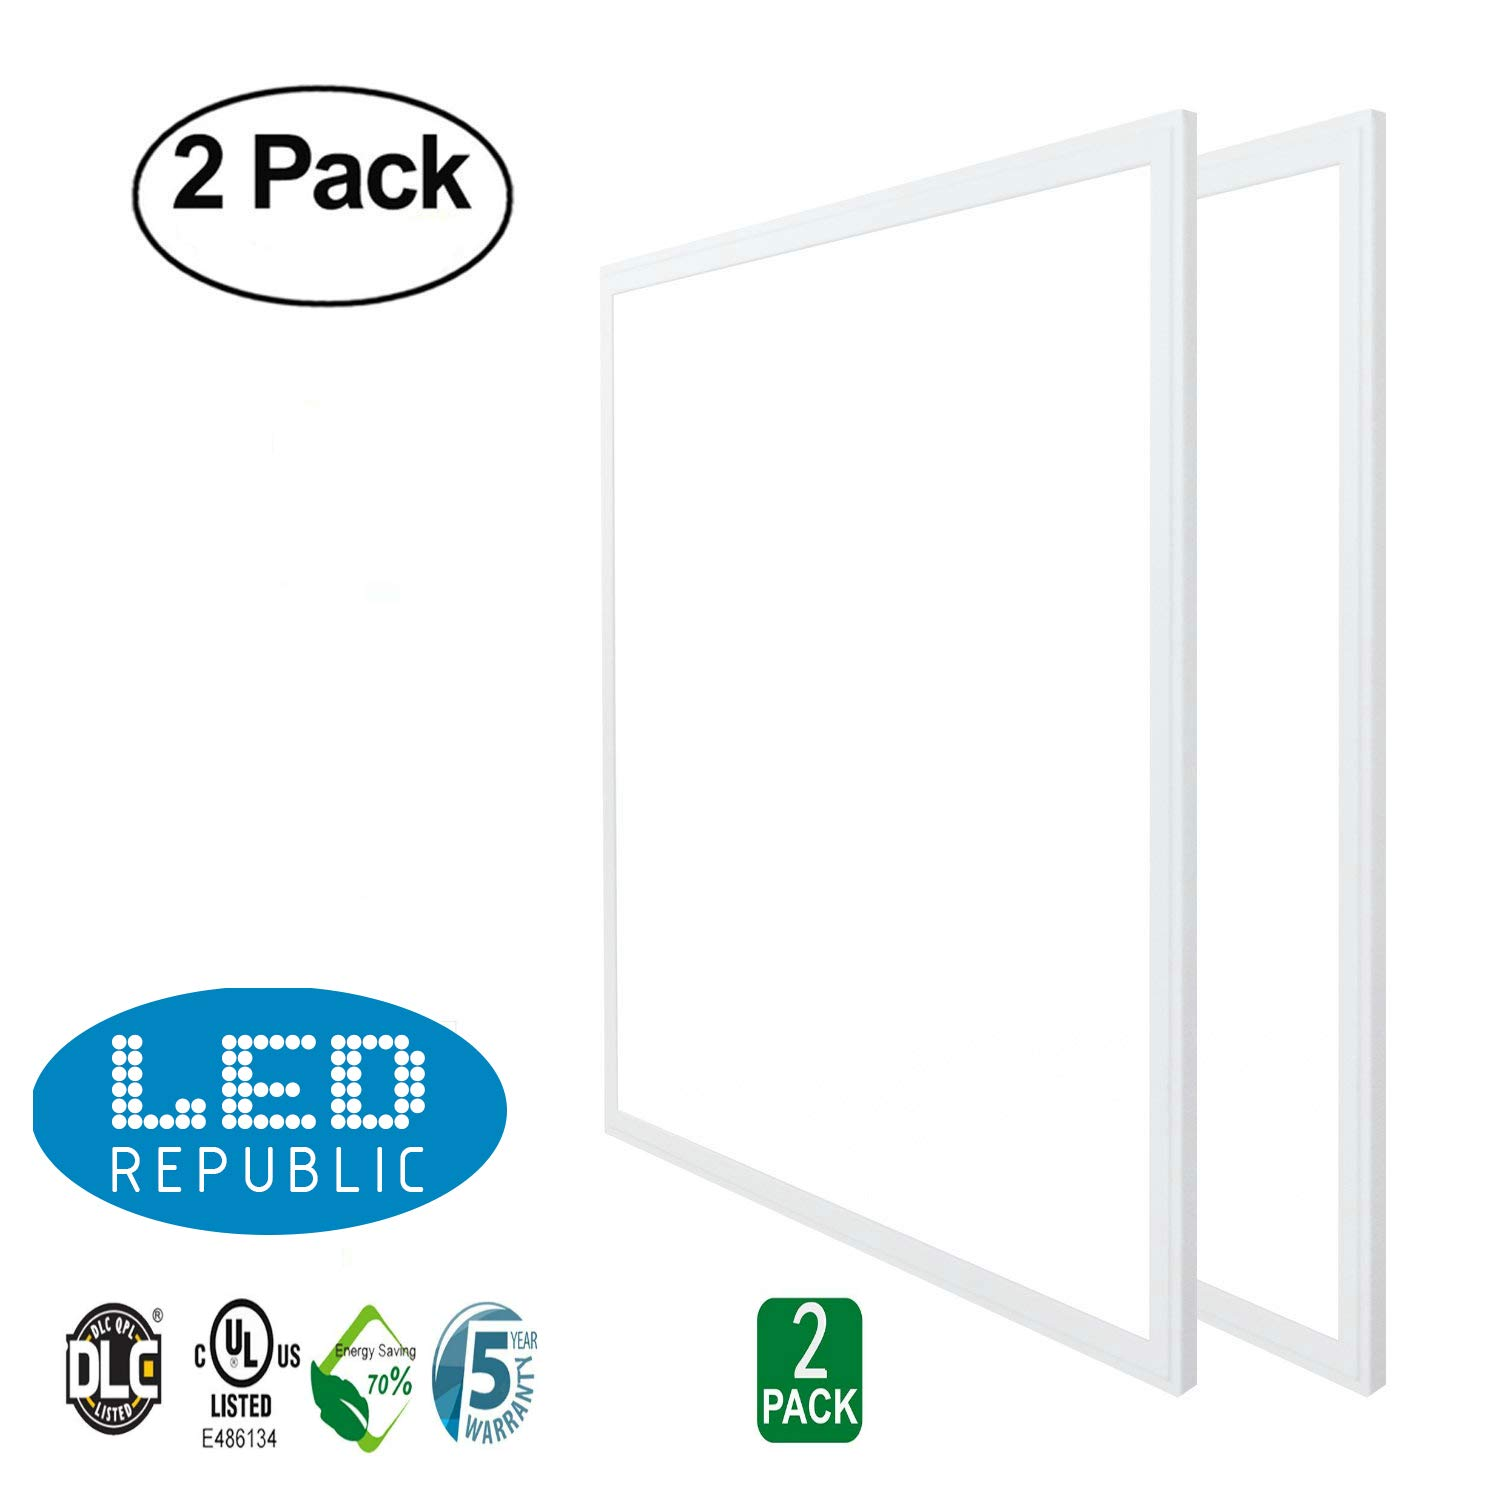 LED Republic Panel Light 2x2 24 x24 40W 140W Equivalent 4300 Lumens 5000K Daylight Cool White DLC & UL 2 PACK Amazon